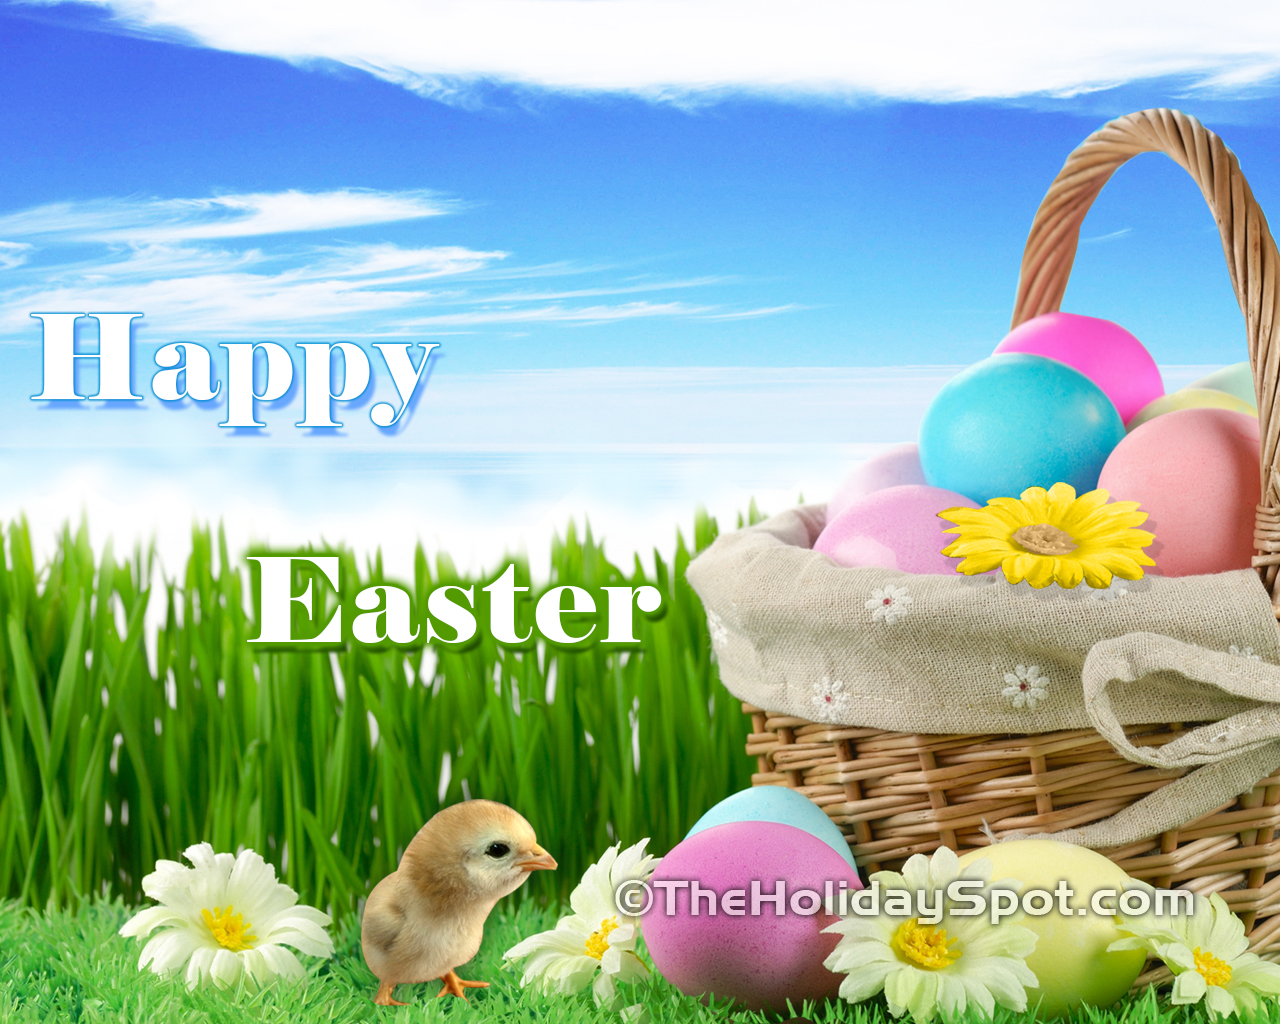 Easter Wallpaper 27   1280 X 1024 stmednet 1280x1024